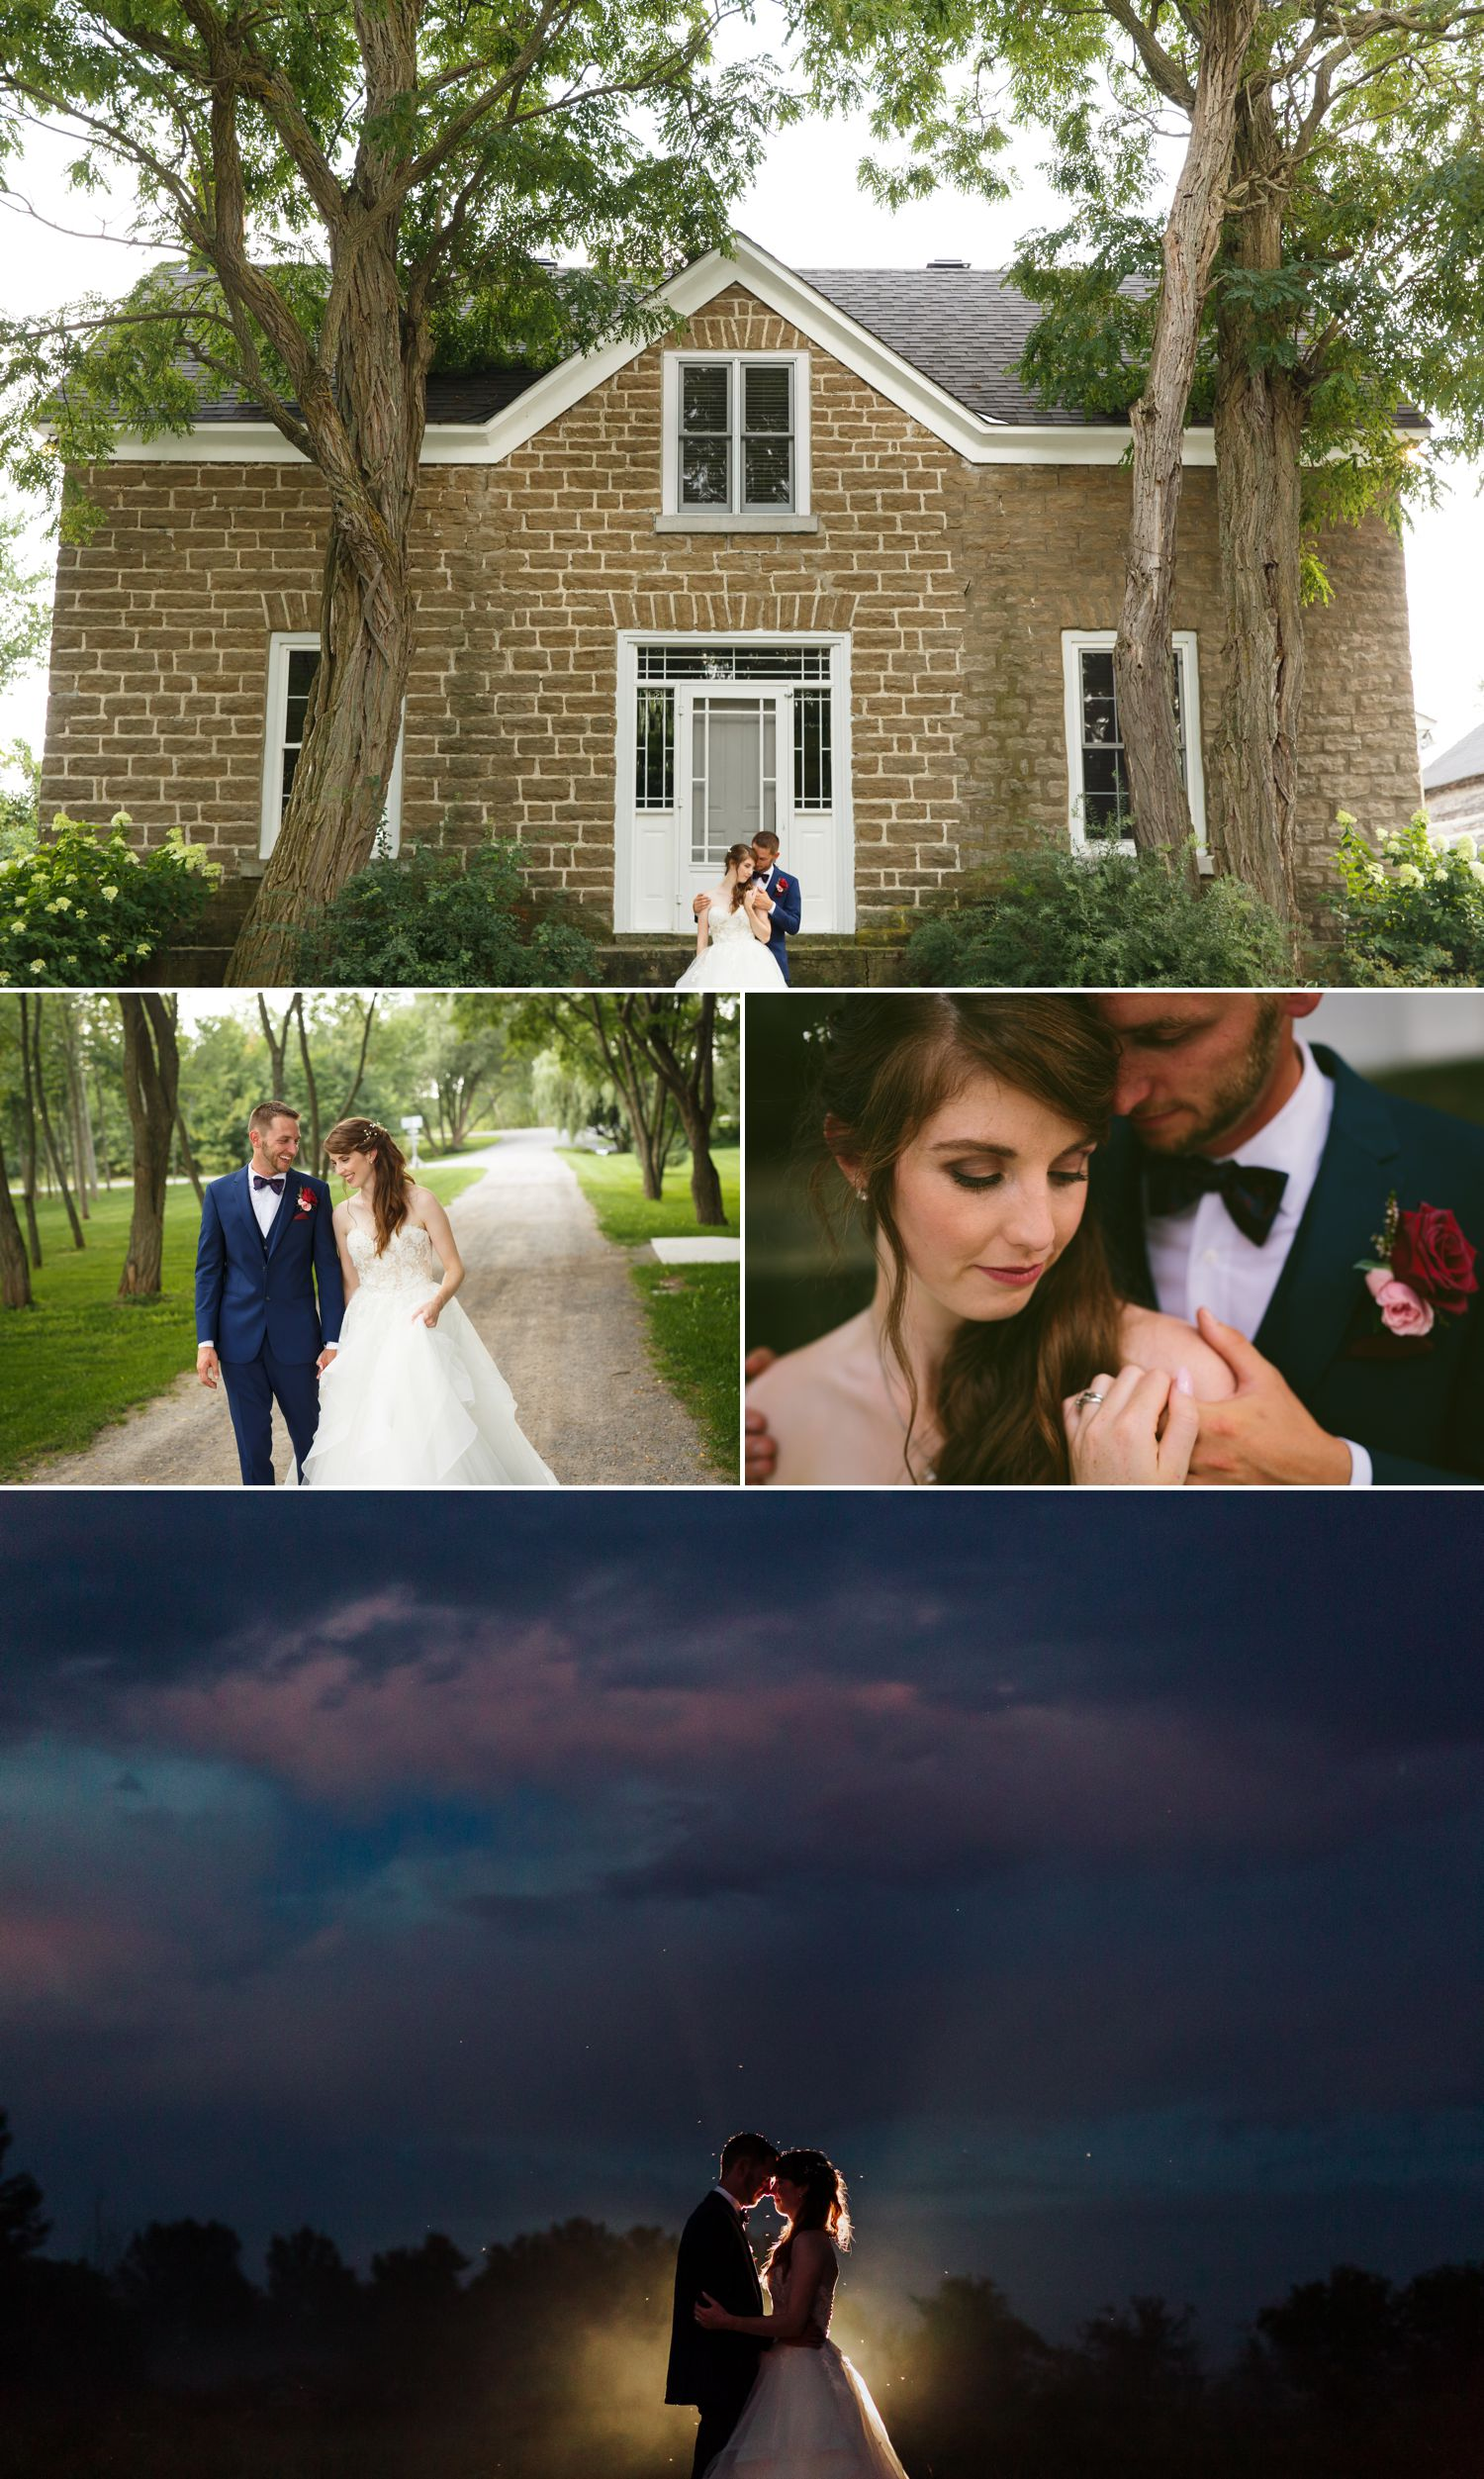 Portraits of the bride and groom taken at Stonefields Estate